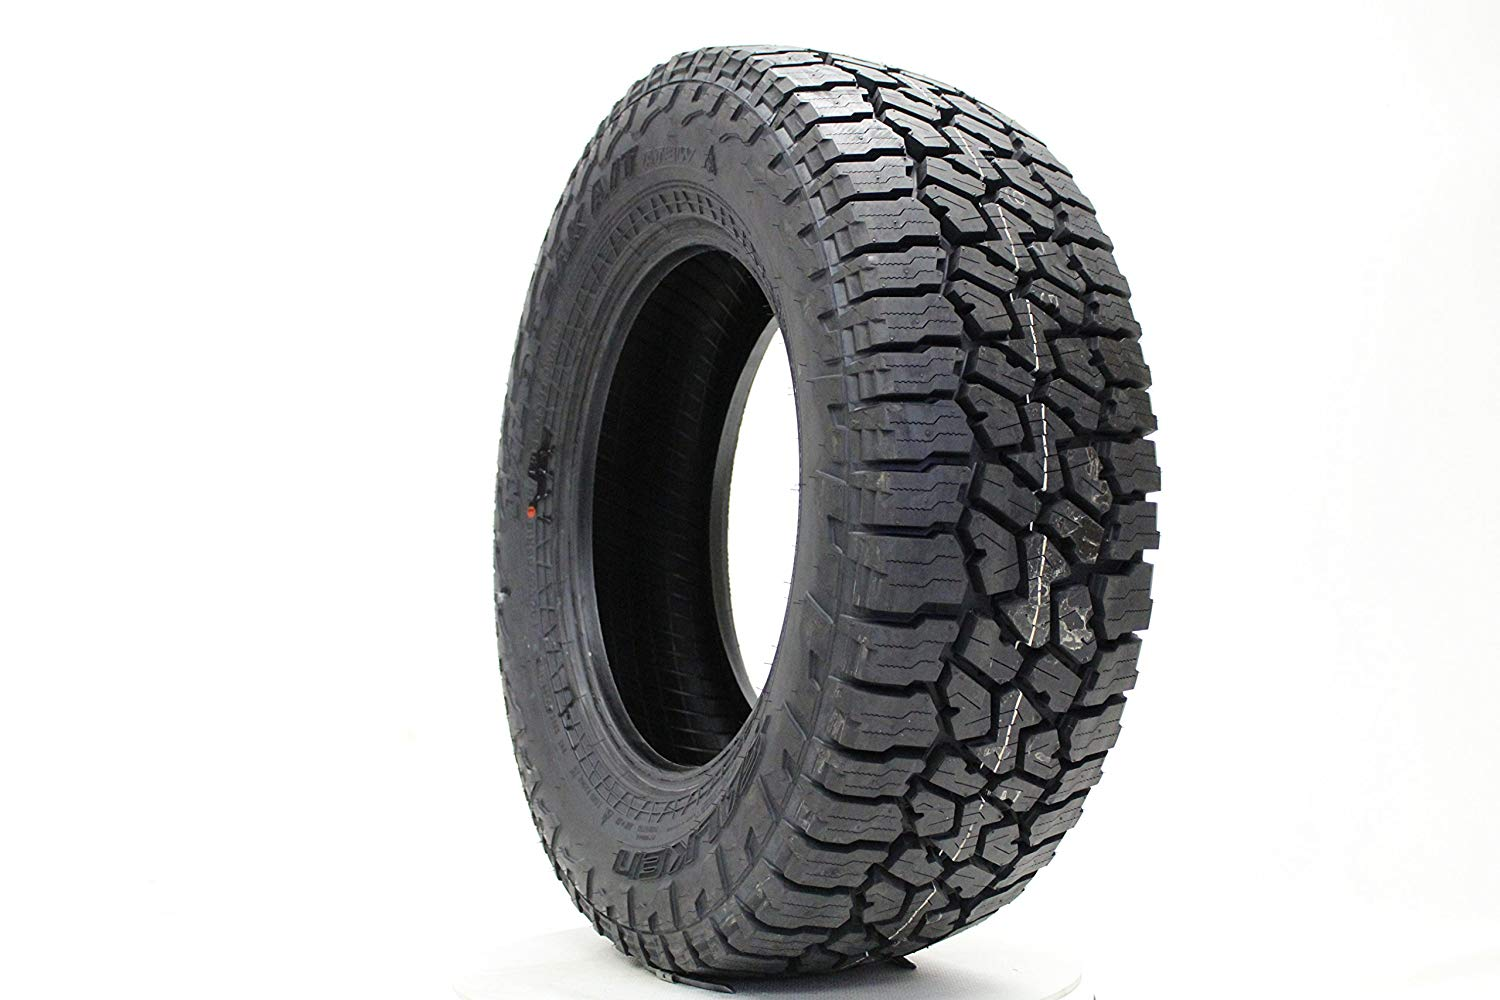 Falken Wildpeak AT3W All-Terrain Radial Tire - 285/70R17 117T